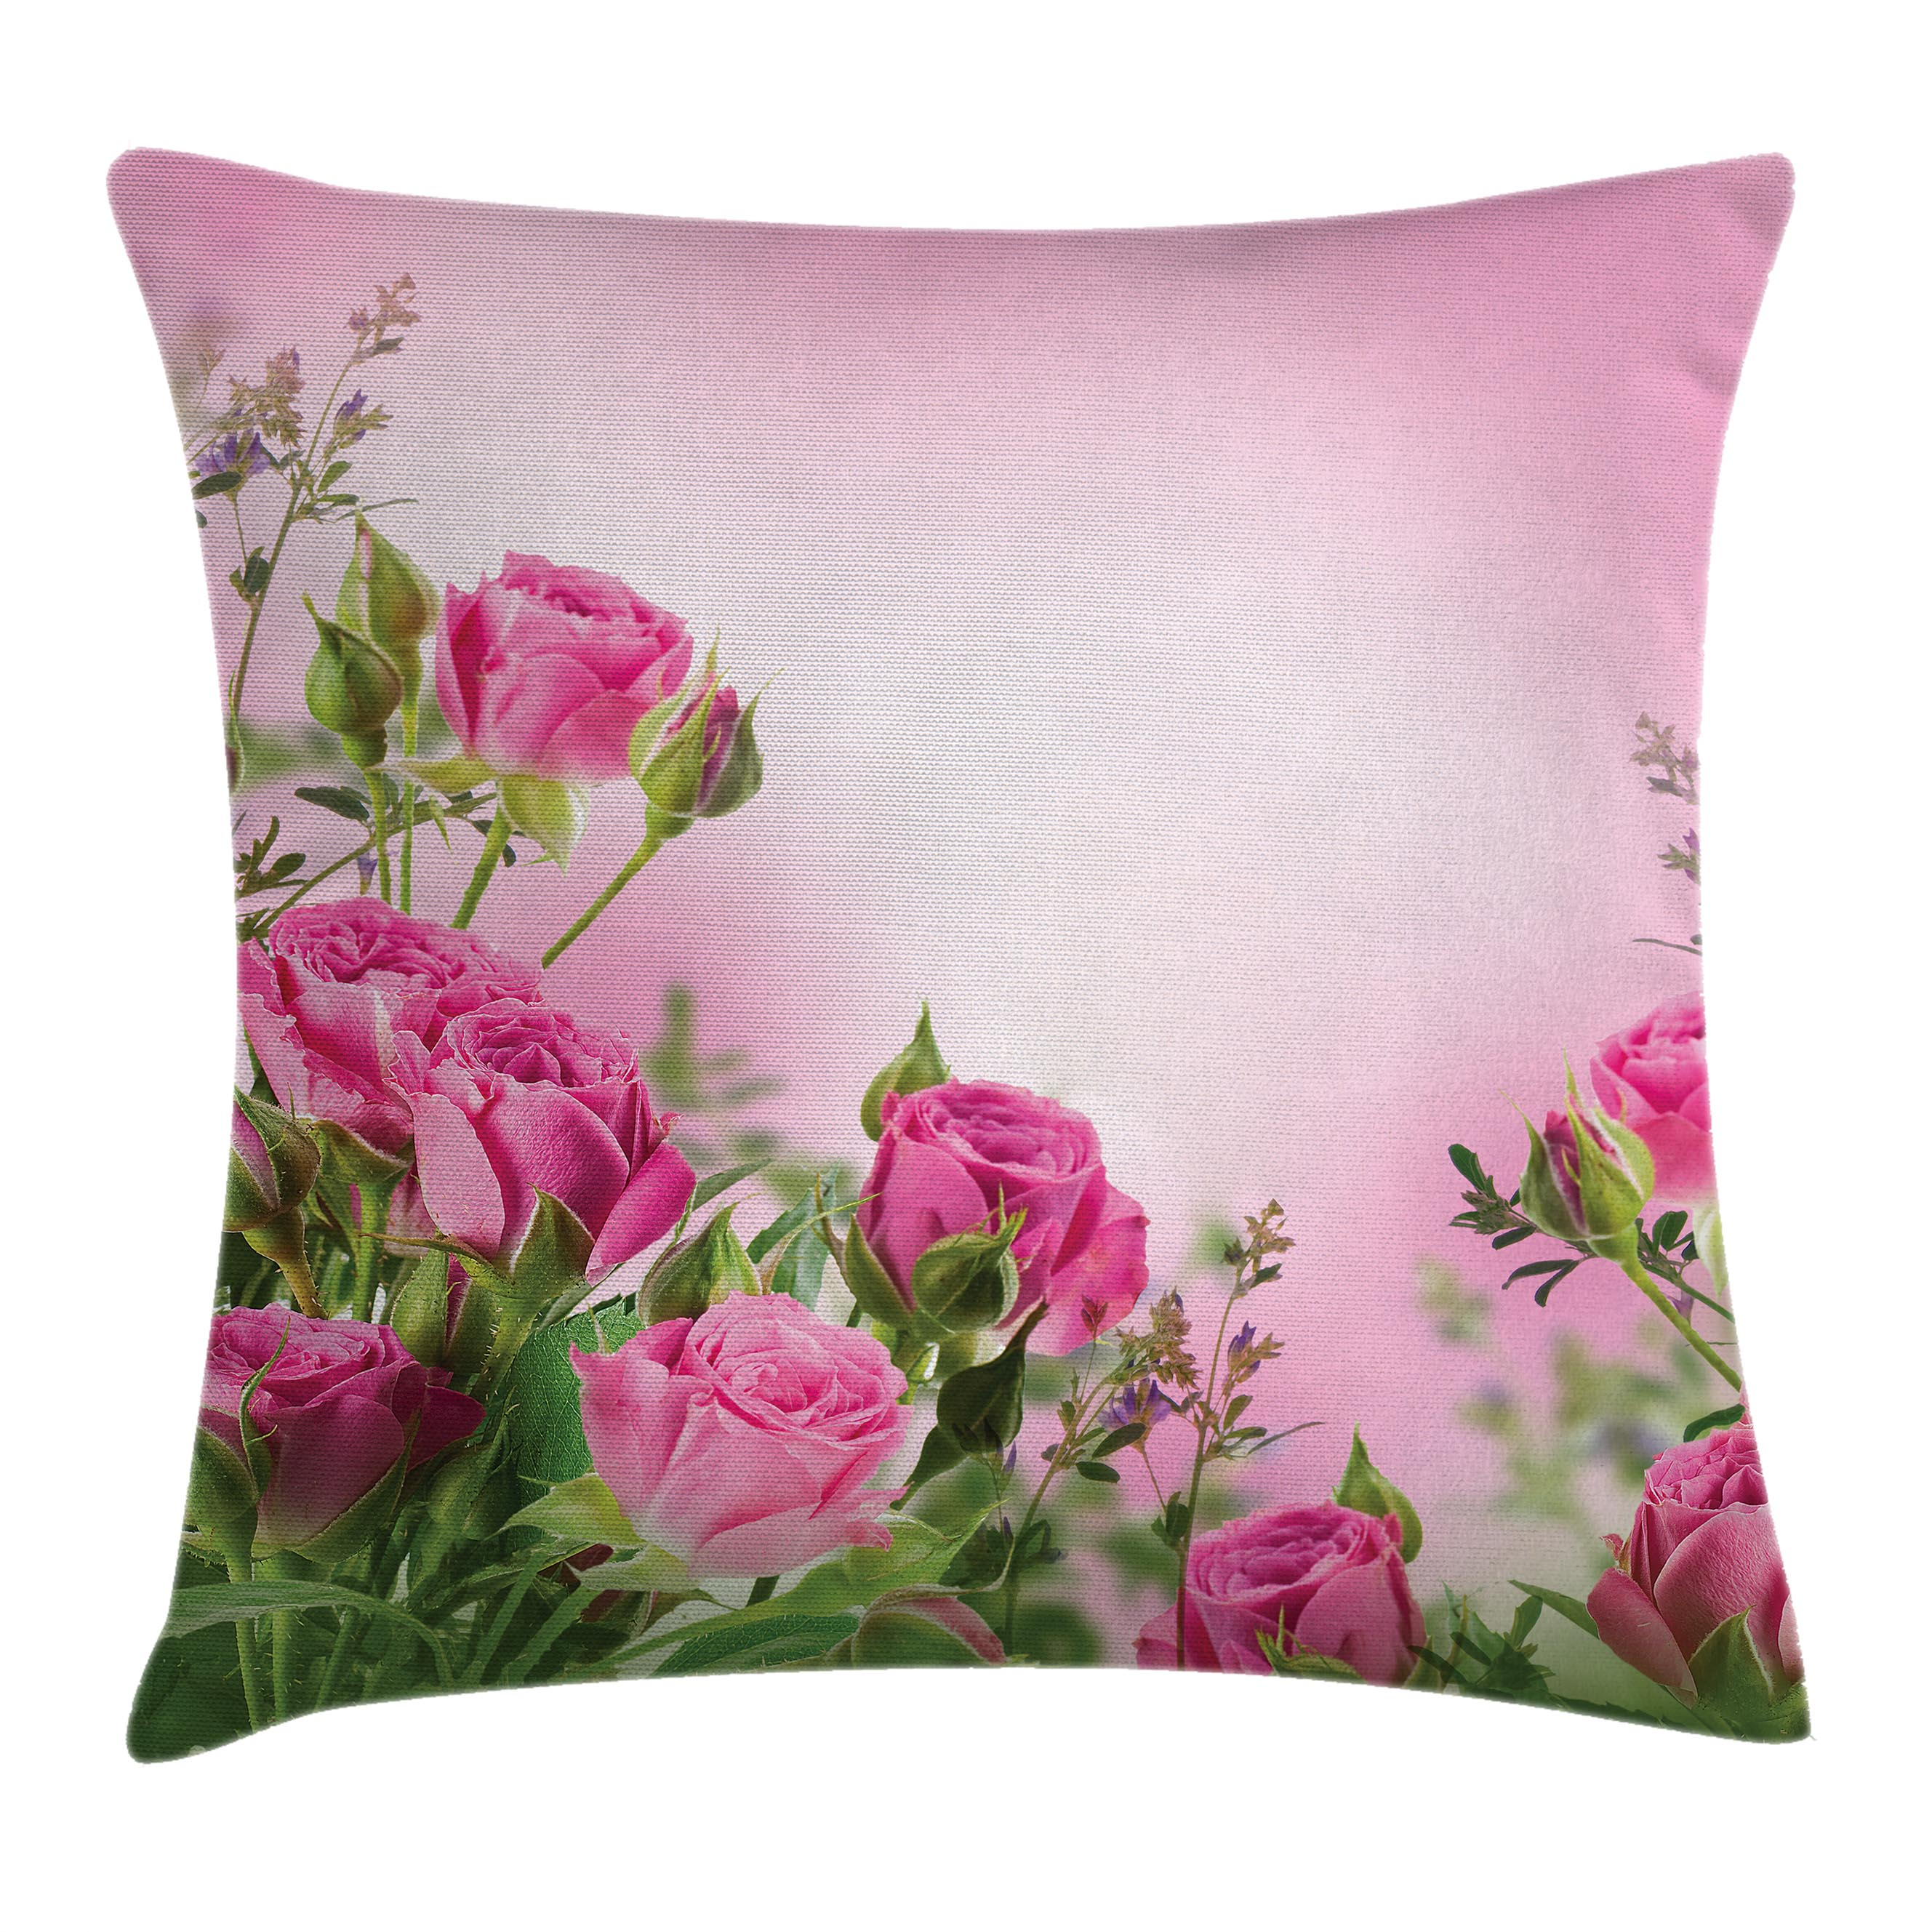 Flower Decor Throw Pillow Cushion Cover Spring Time Roses With